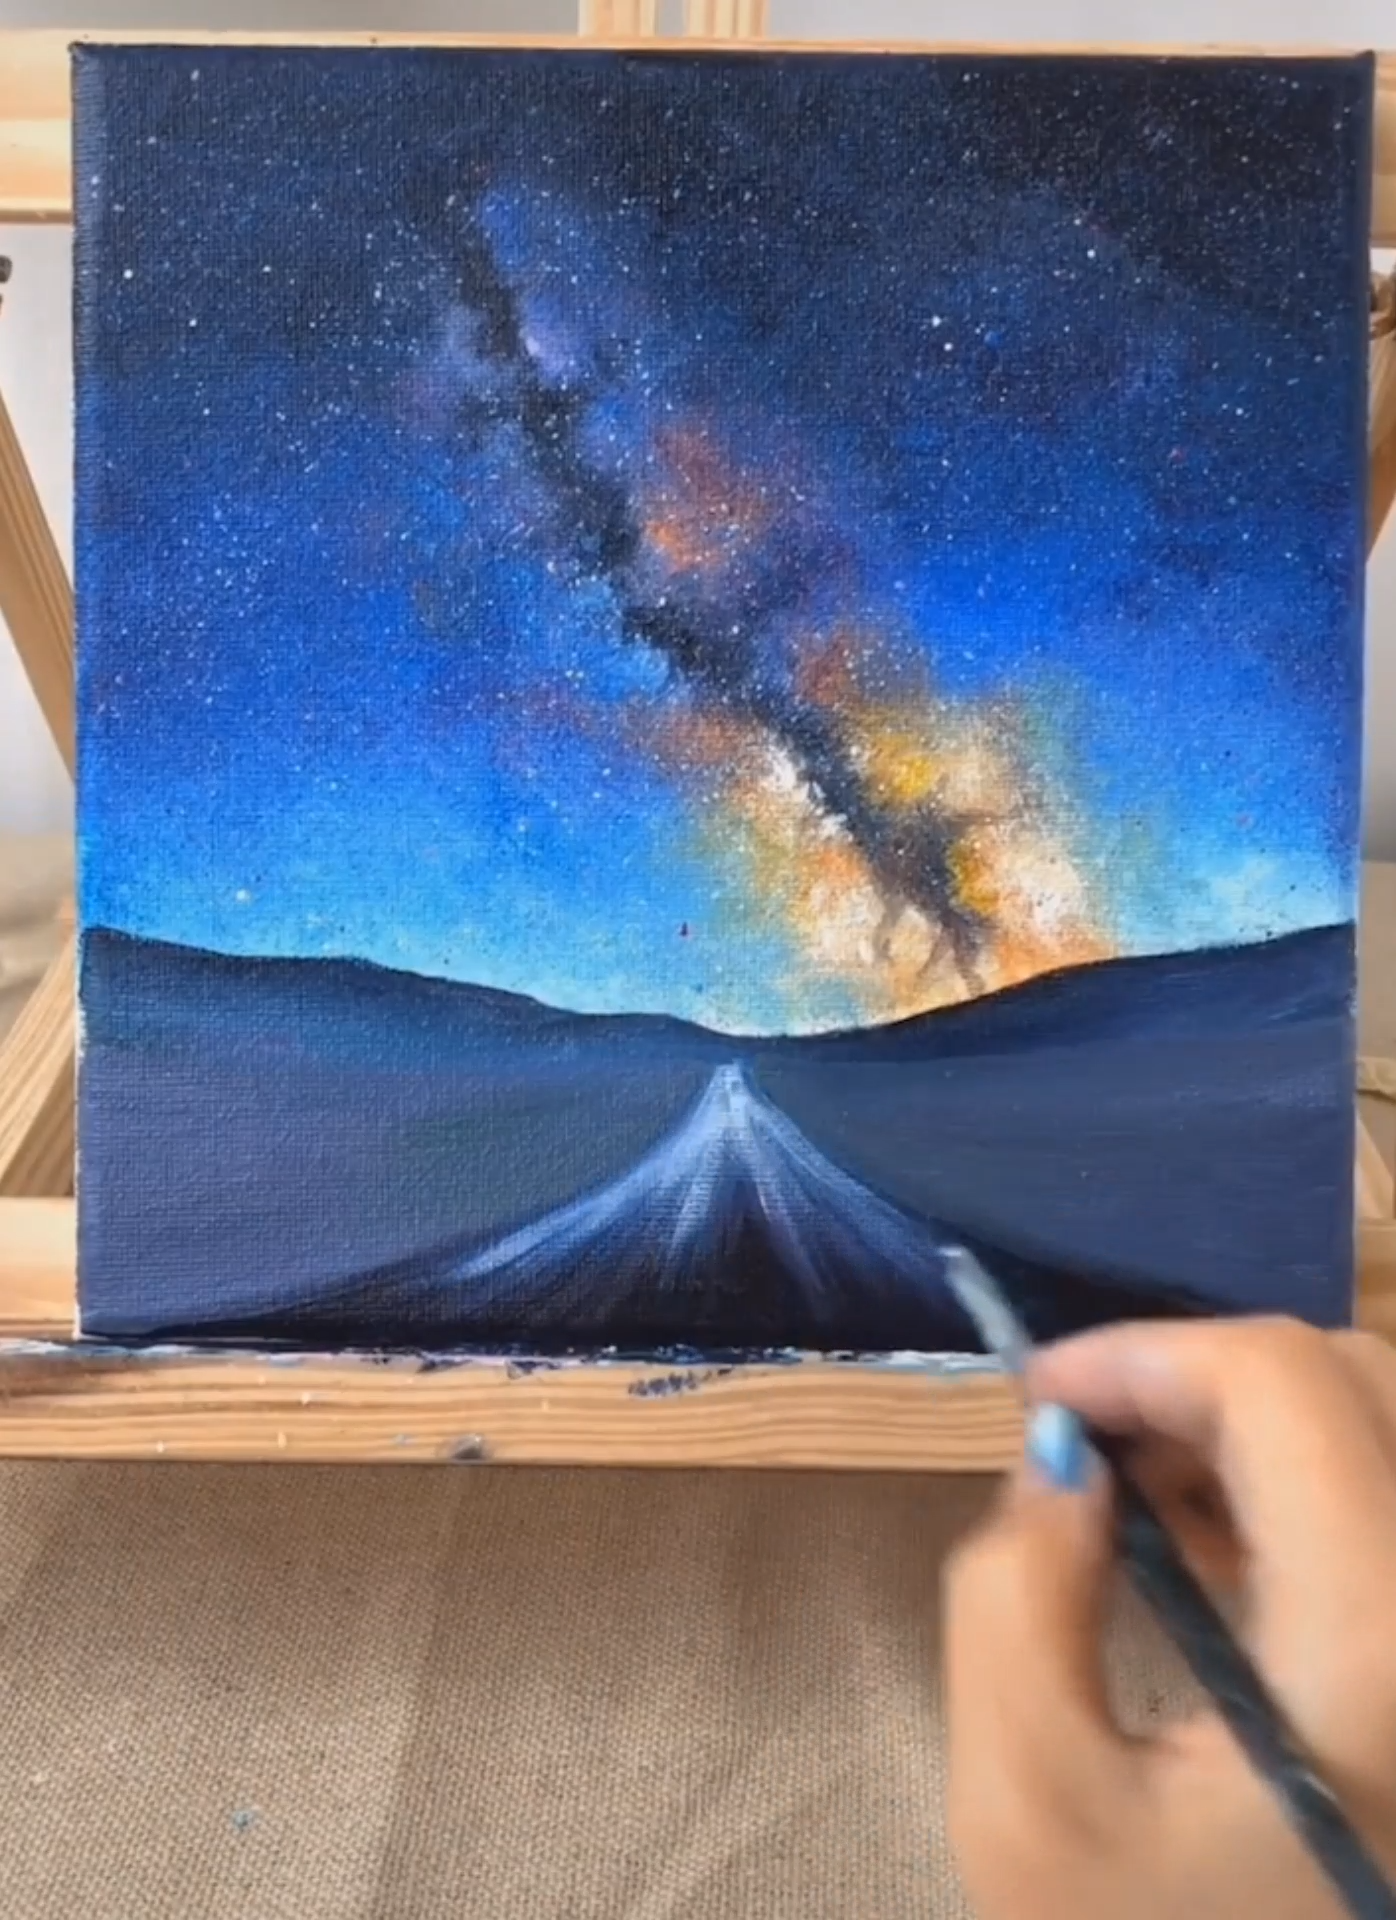 Let's learn to draw together. innovative Oil painting, # DIY Oil painting # Oil painting#Starry sky